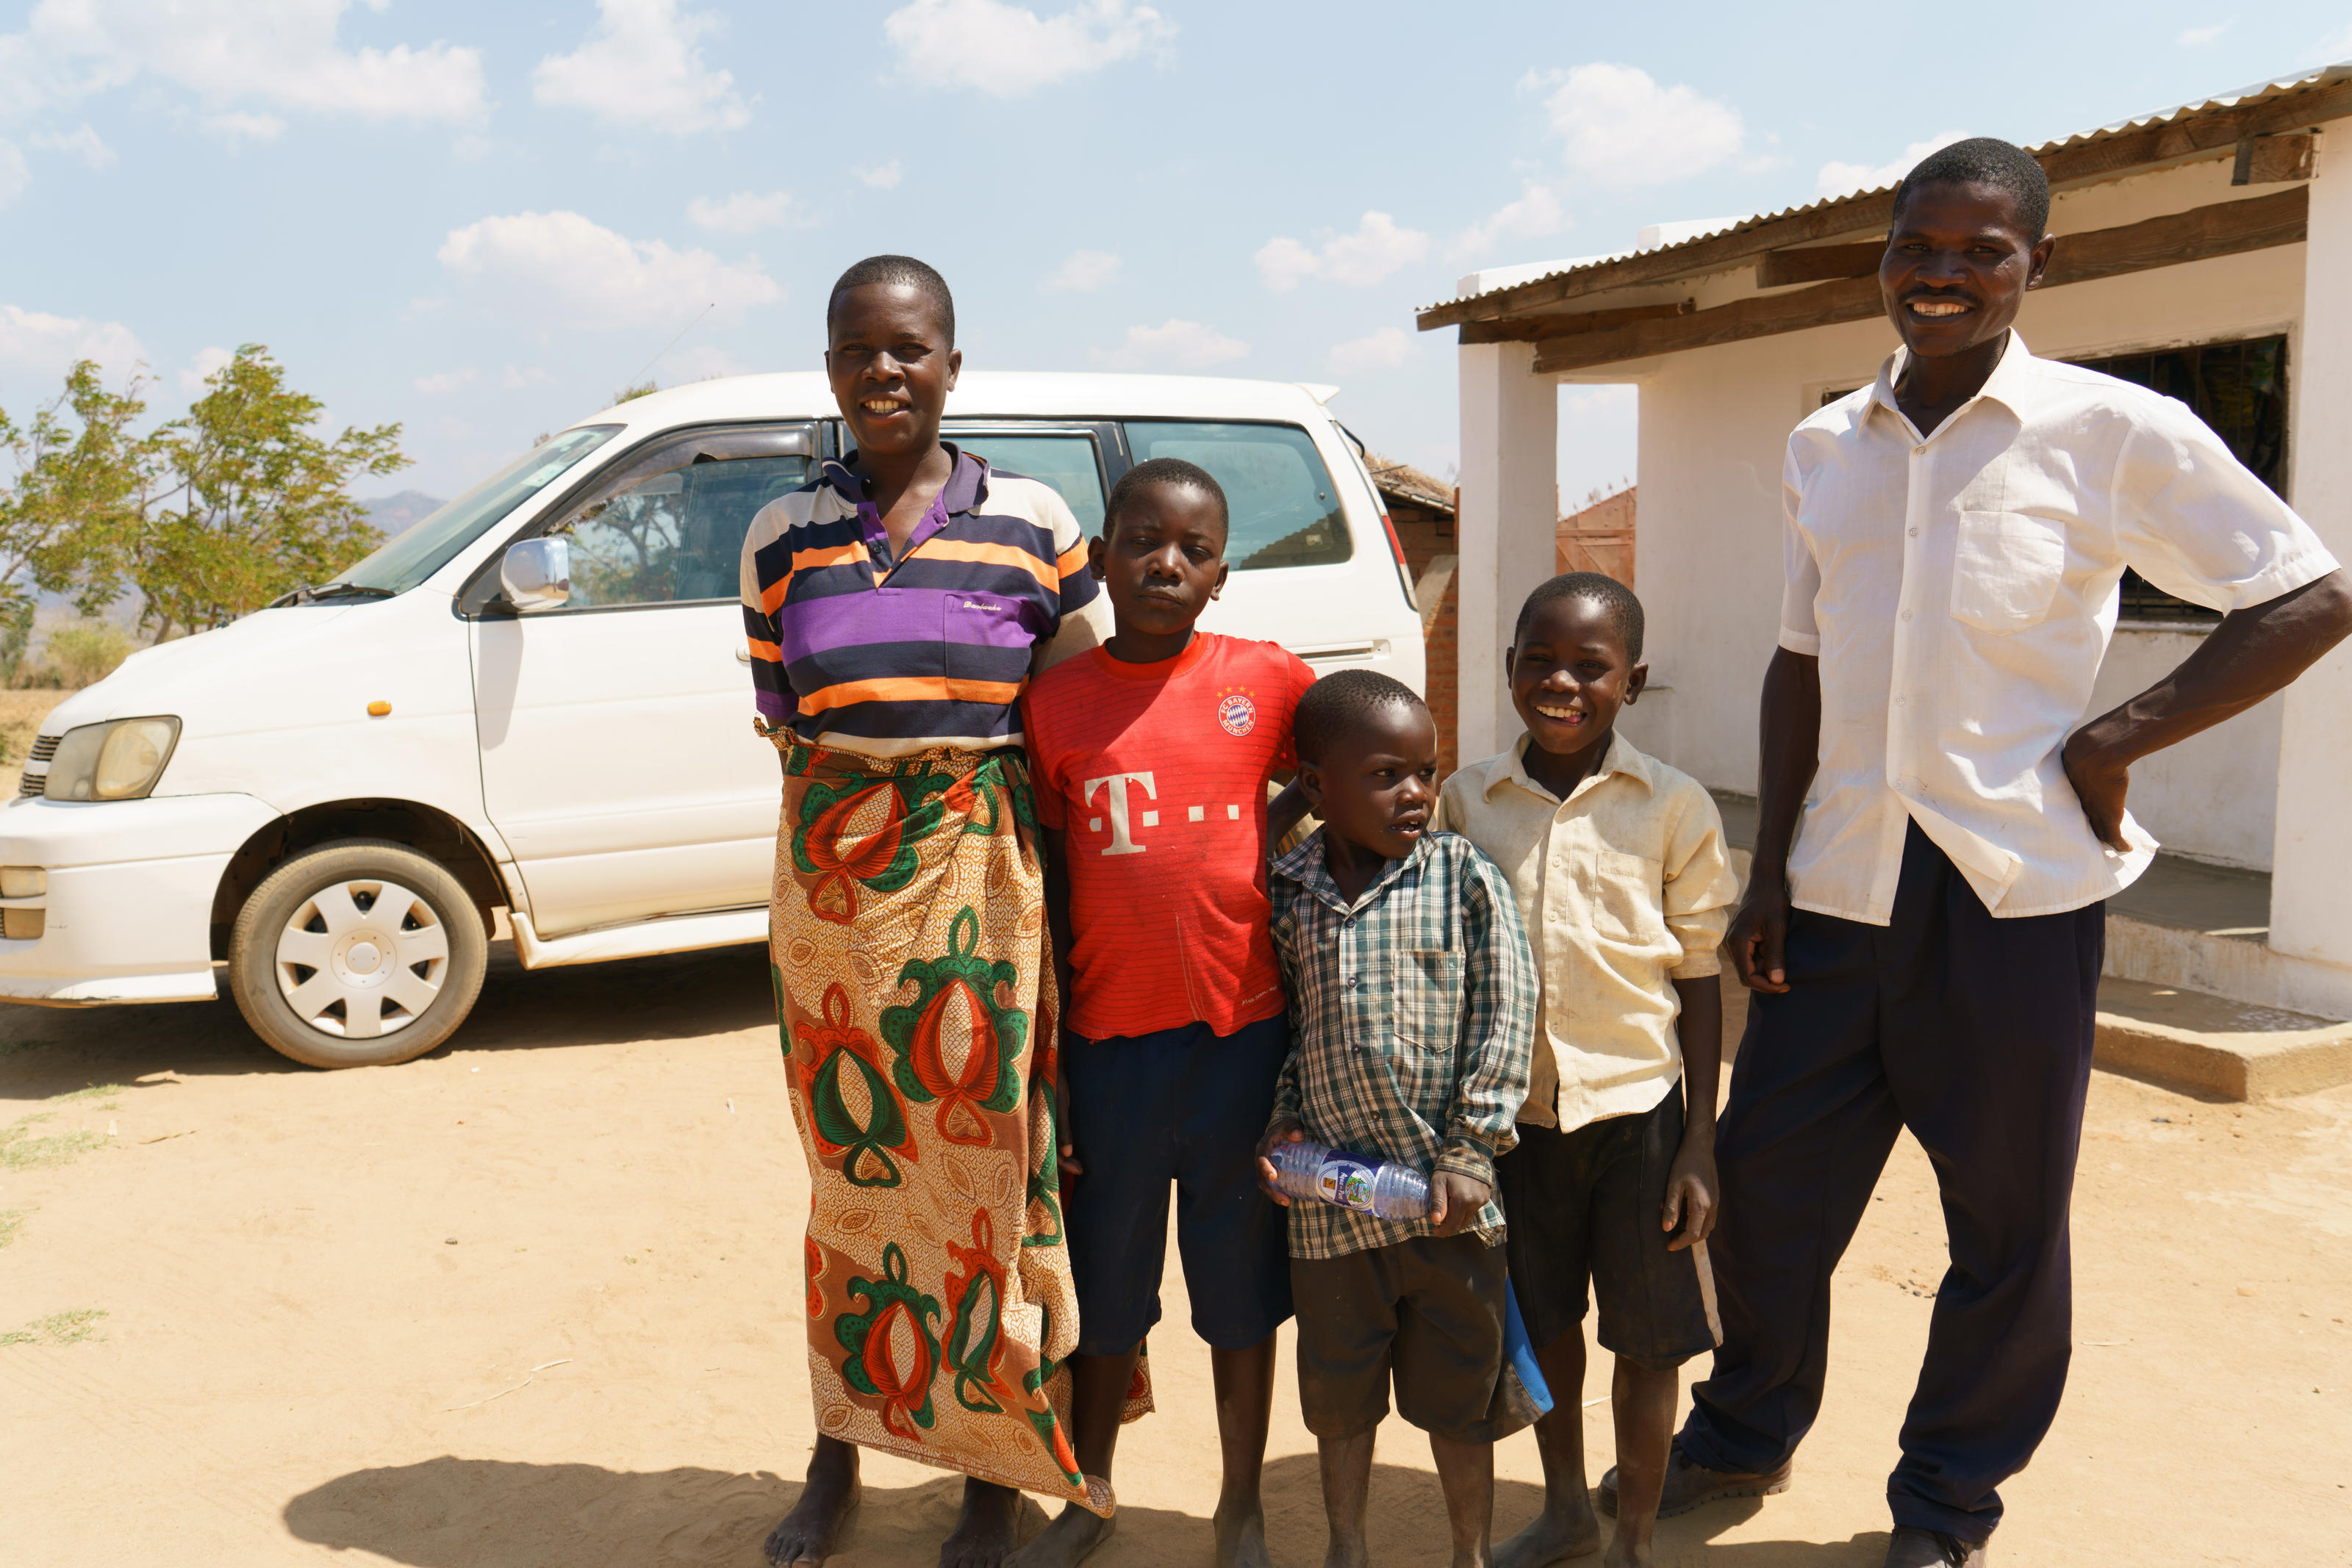 Joyce and her family in front of their new car in Vimphere, September 2017.